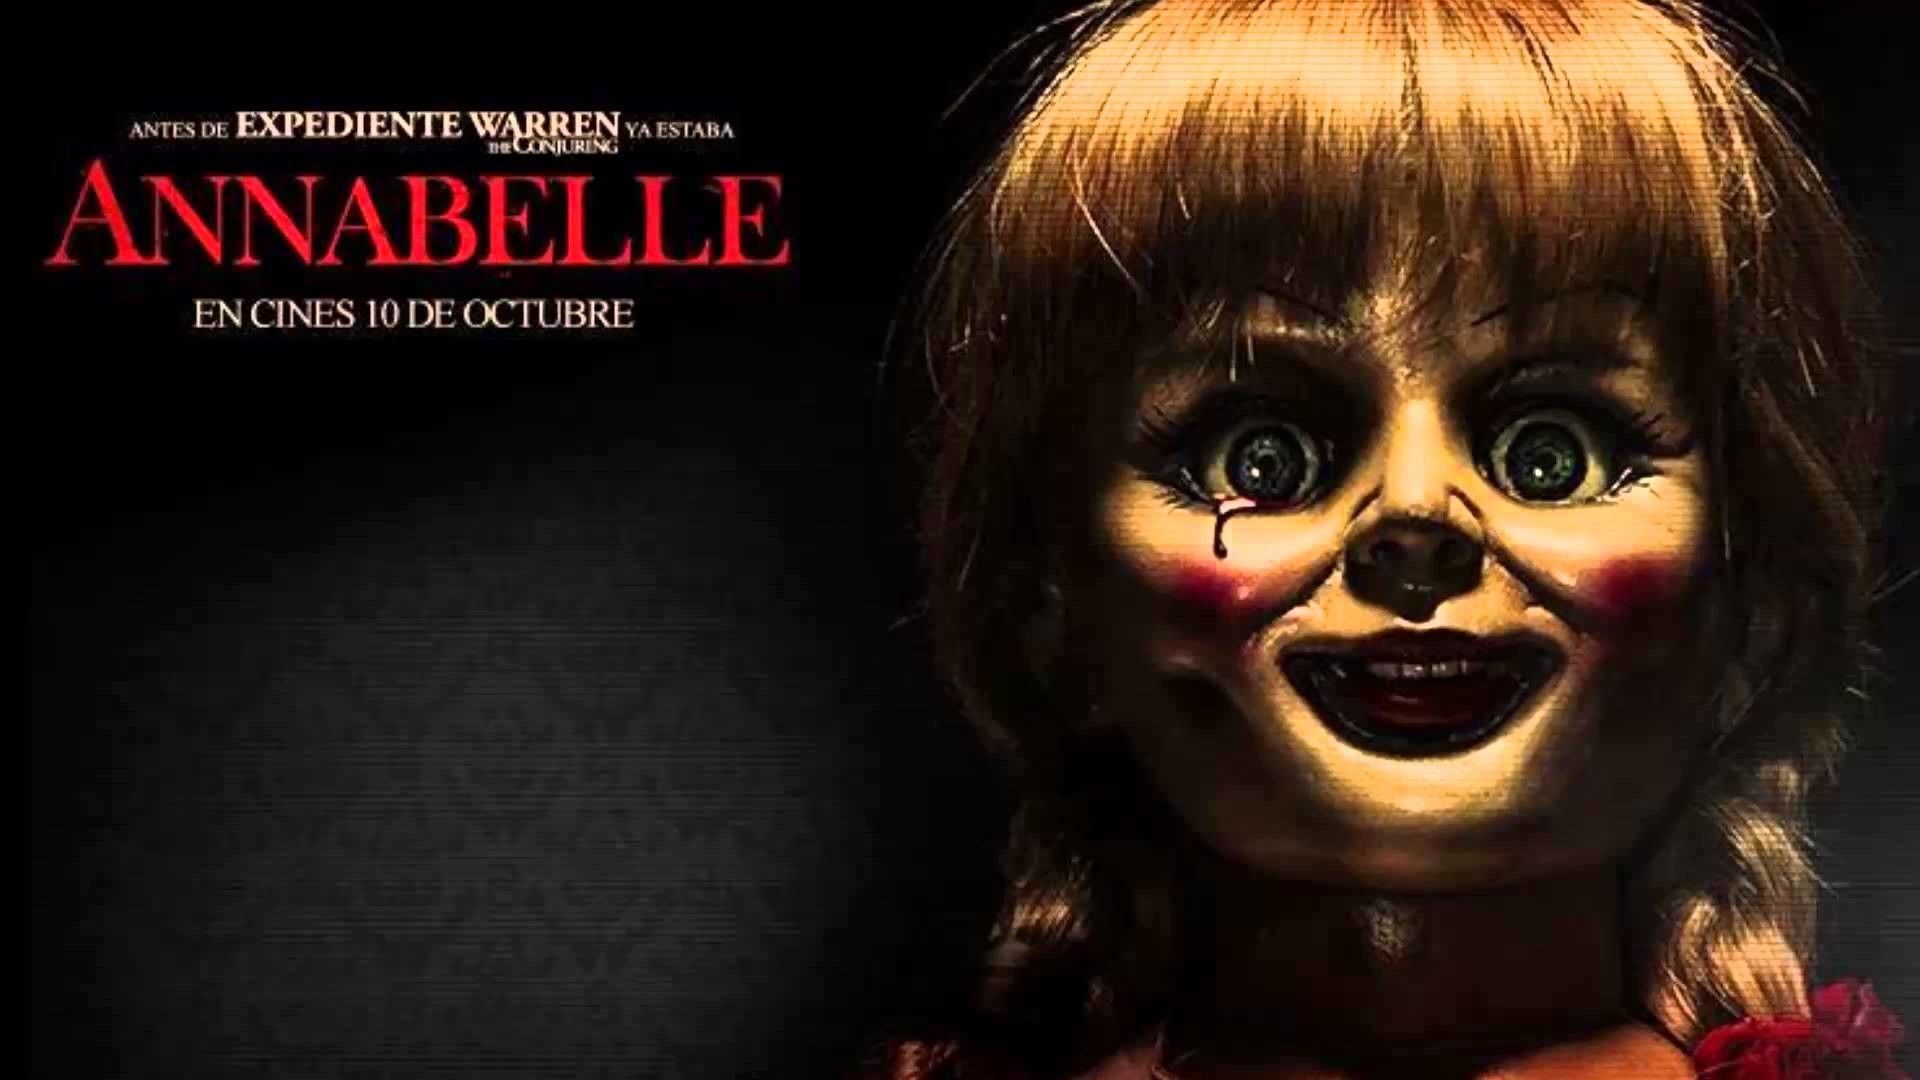 Annabelle Creation Wallpaper For Iphone Iphone Wallpaper Wallpaper Movie Wallpapers